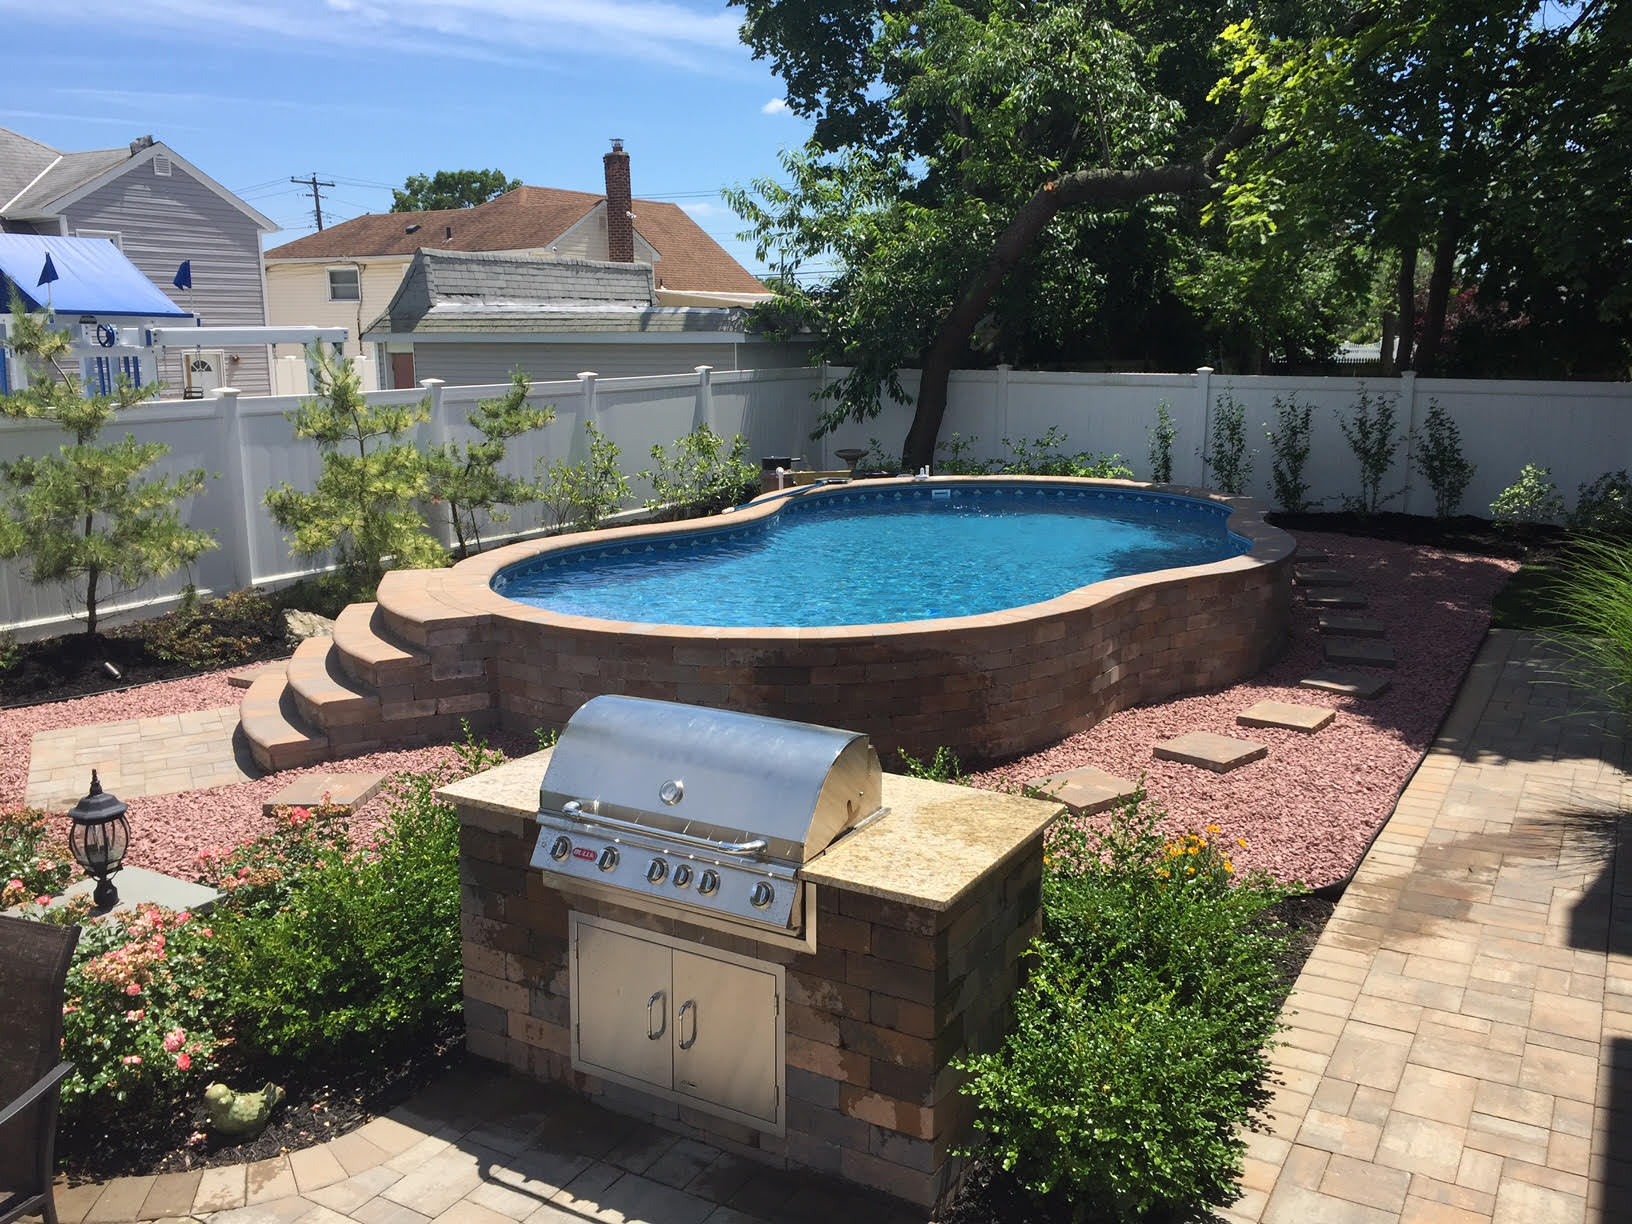 The Best Semi Inground Pool Nashville Pool Company with regard to proportions 1632 X 1224